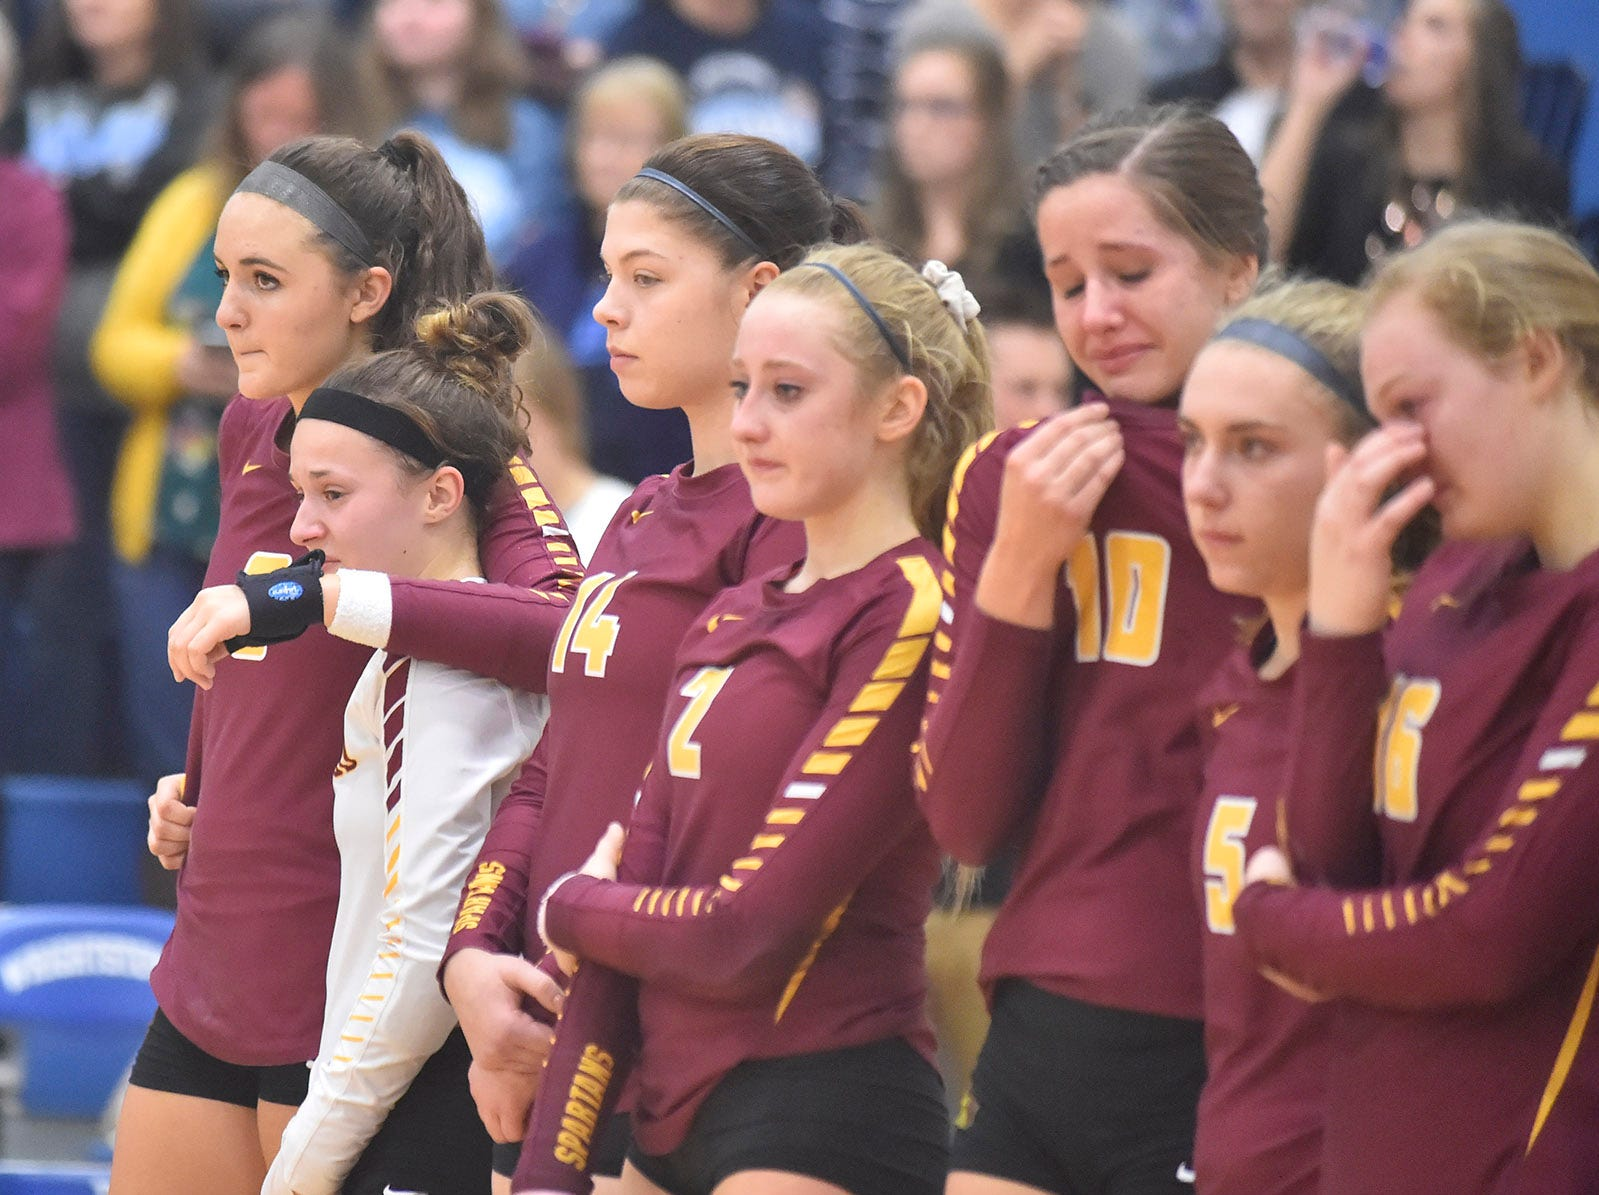 Luxemburg-Casco volleyball team watches as Little Chute receives sectional championship accolades at Wrightstown on Saturday, Oct. 27, 2018. Tina M. Gohr/USA TODAY NETWORK-Wisconsin